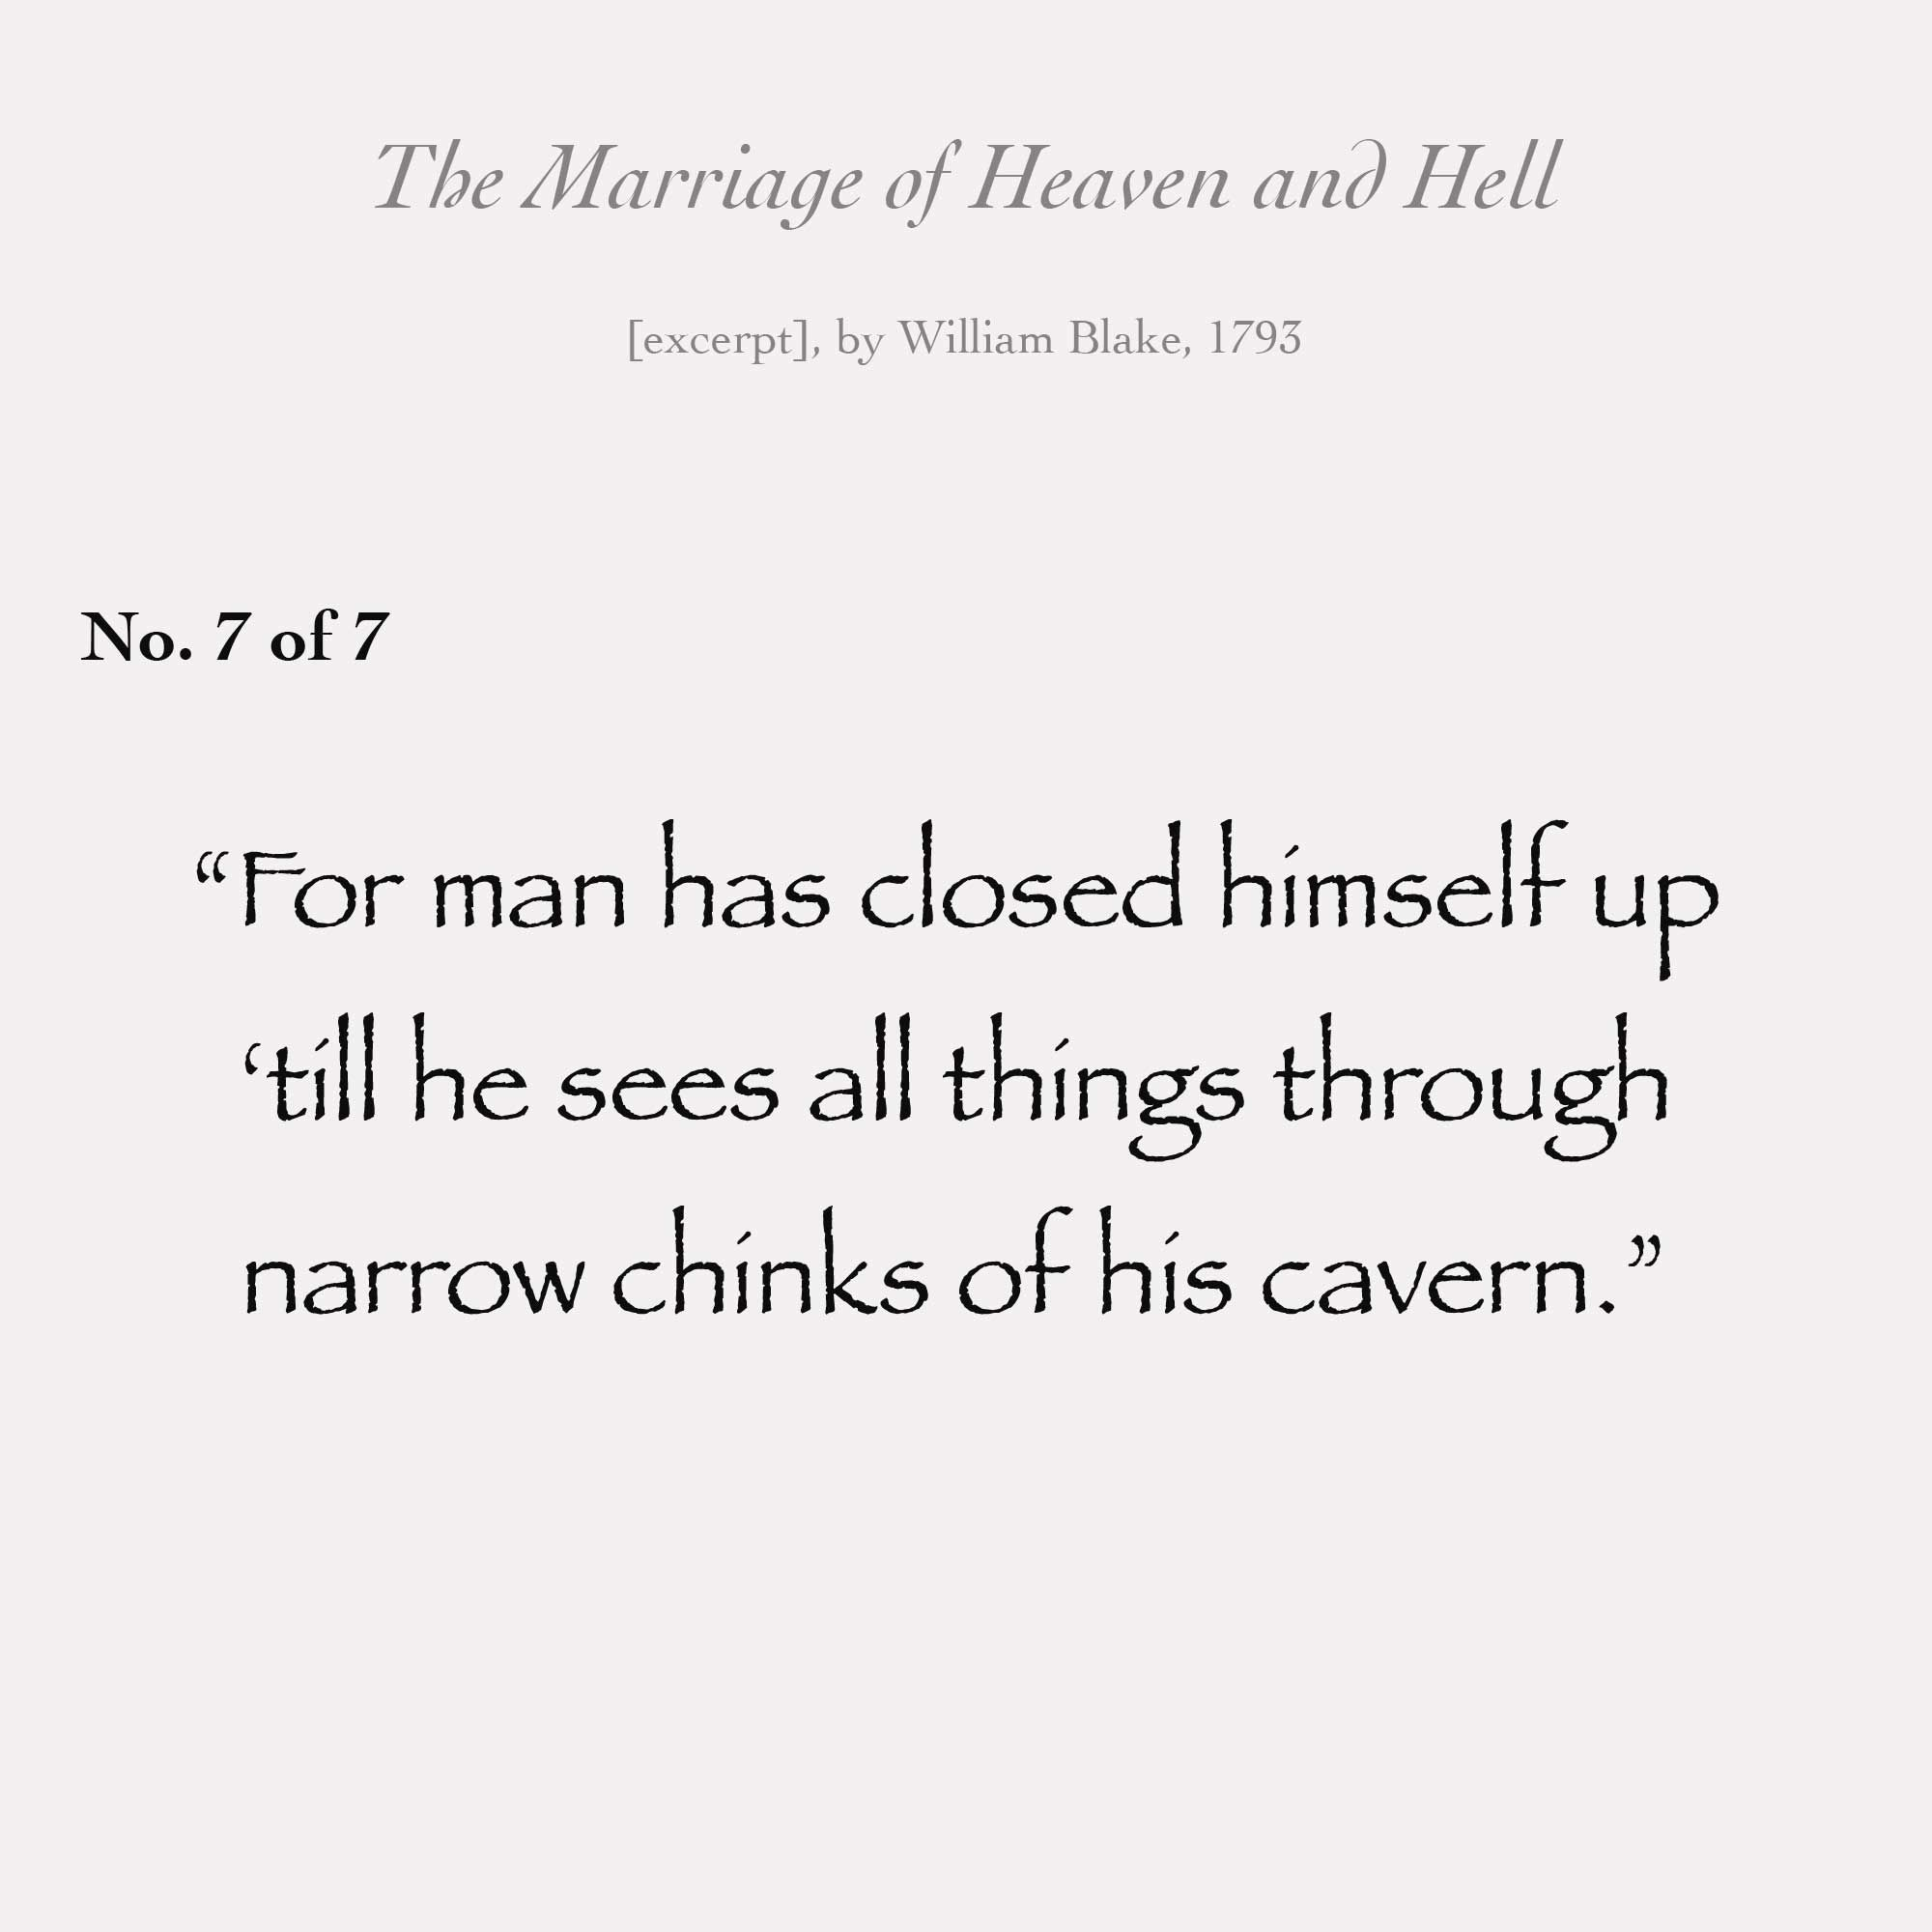 """For man has closed himself up till he sees all things through narrow chinks of his cavern."""